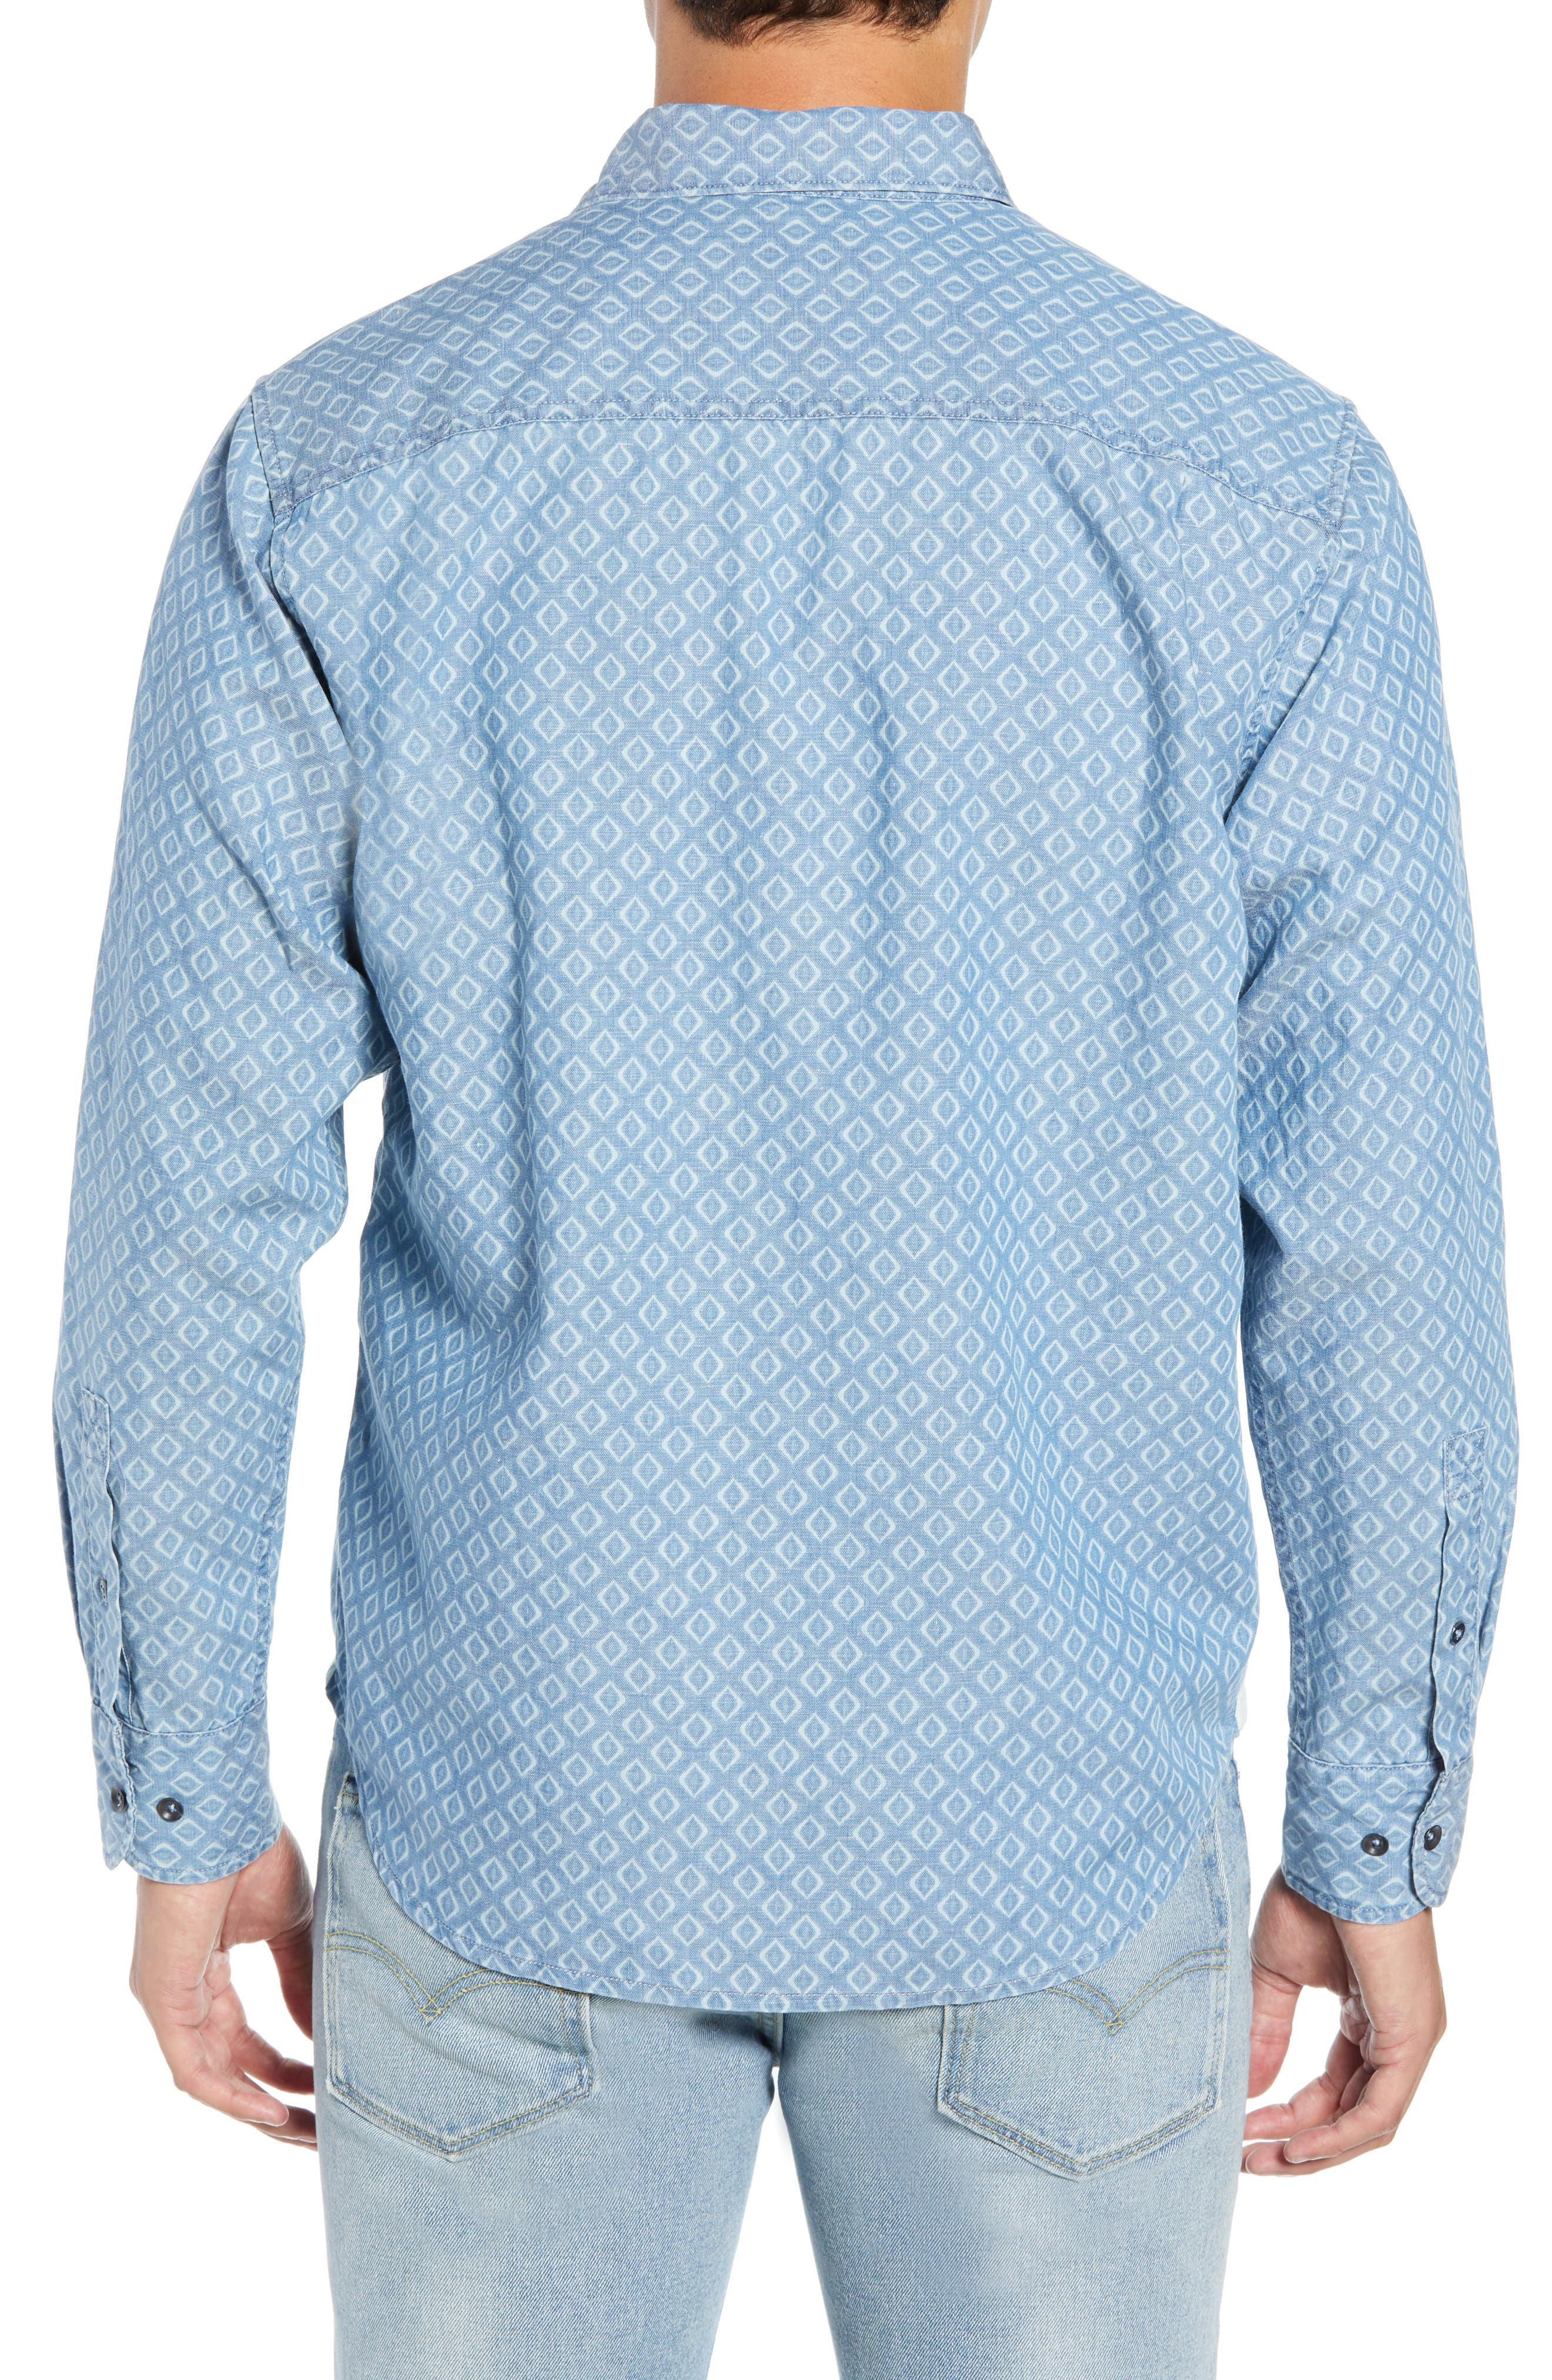 Geo Indigo Regular Fit Sport Shirt,                             Alternate thumbnail 3, color,                             400